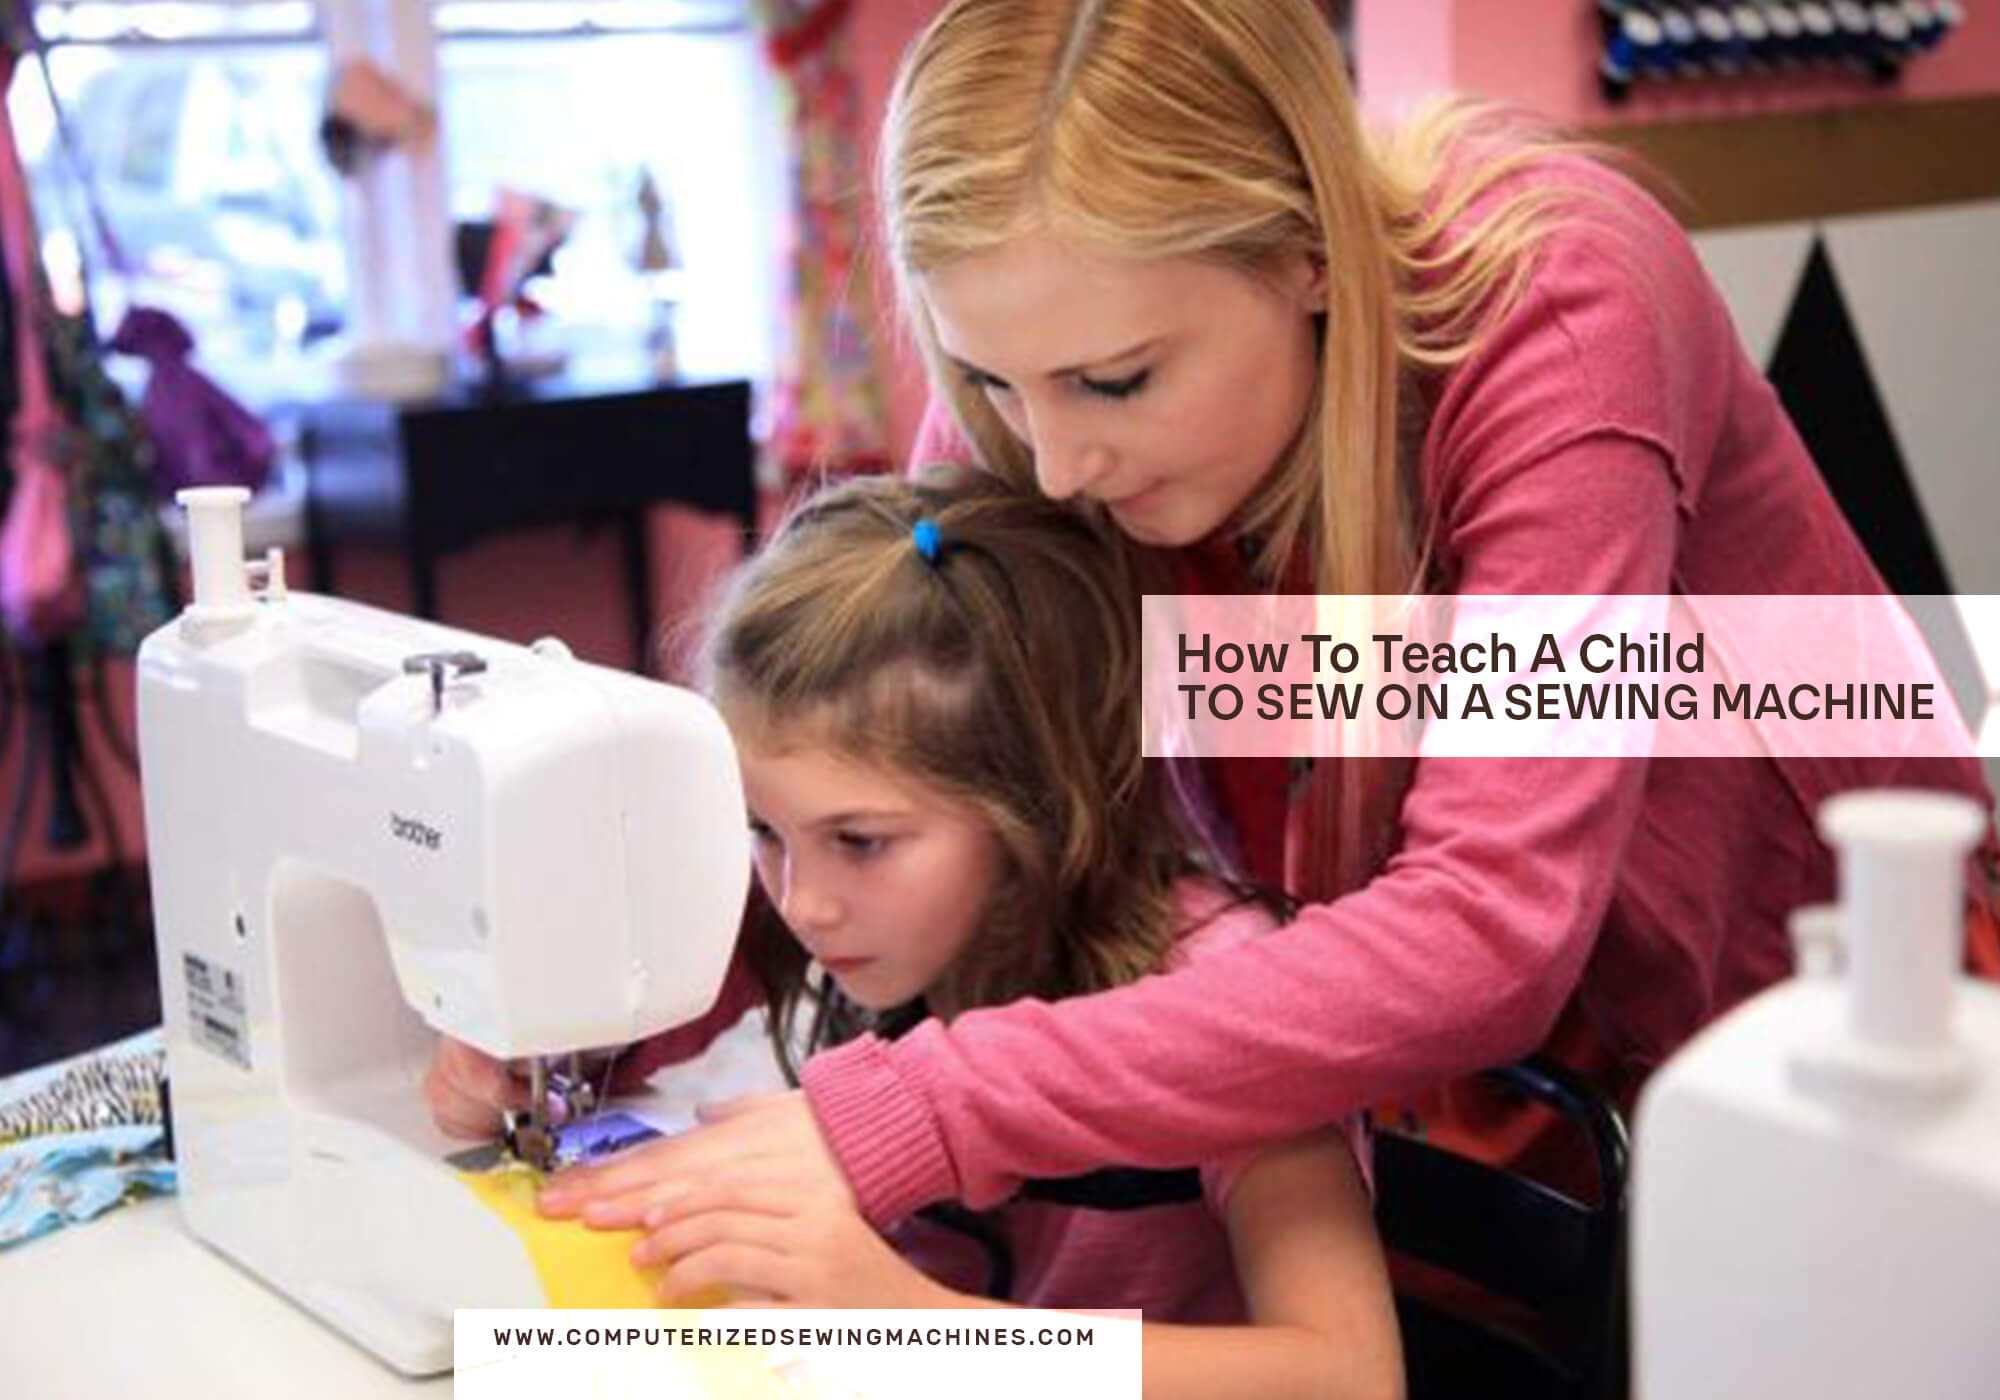 How To Teach A Child To Sew On A Sewing Machine